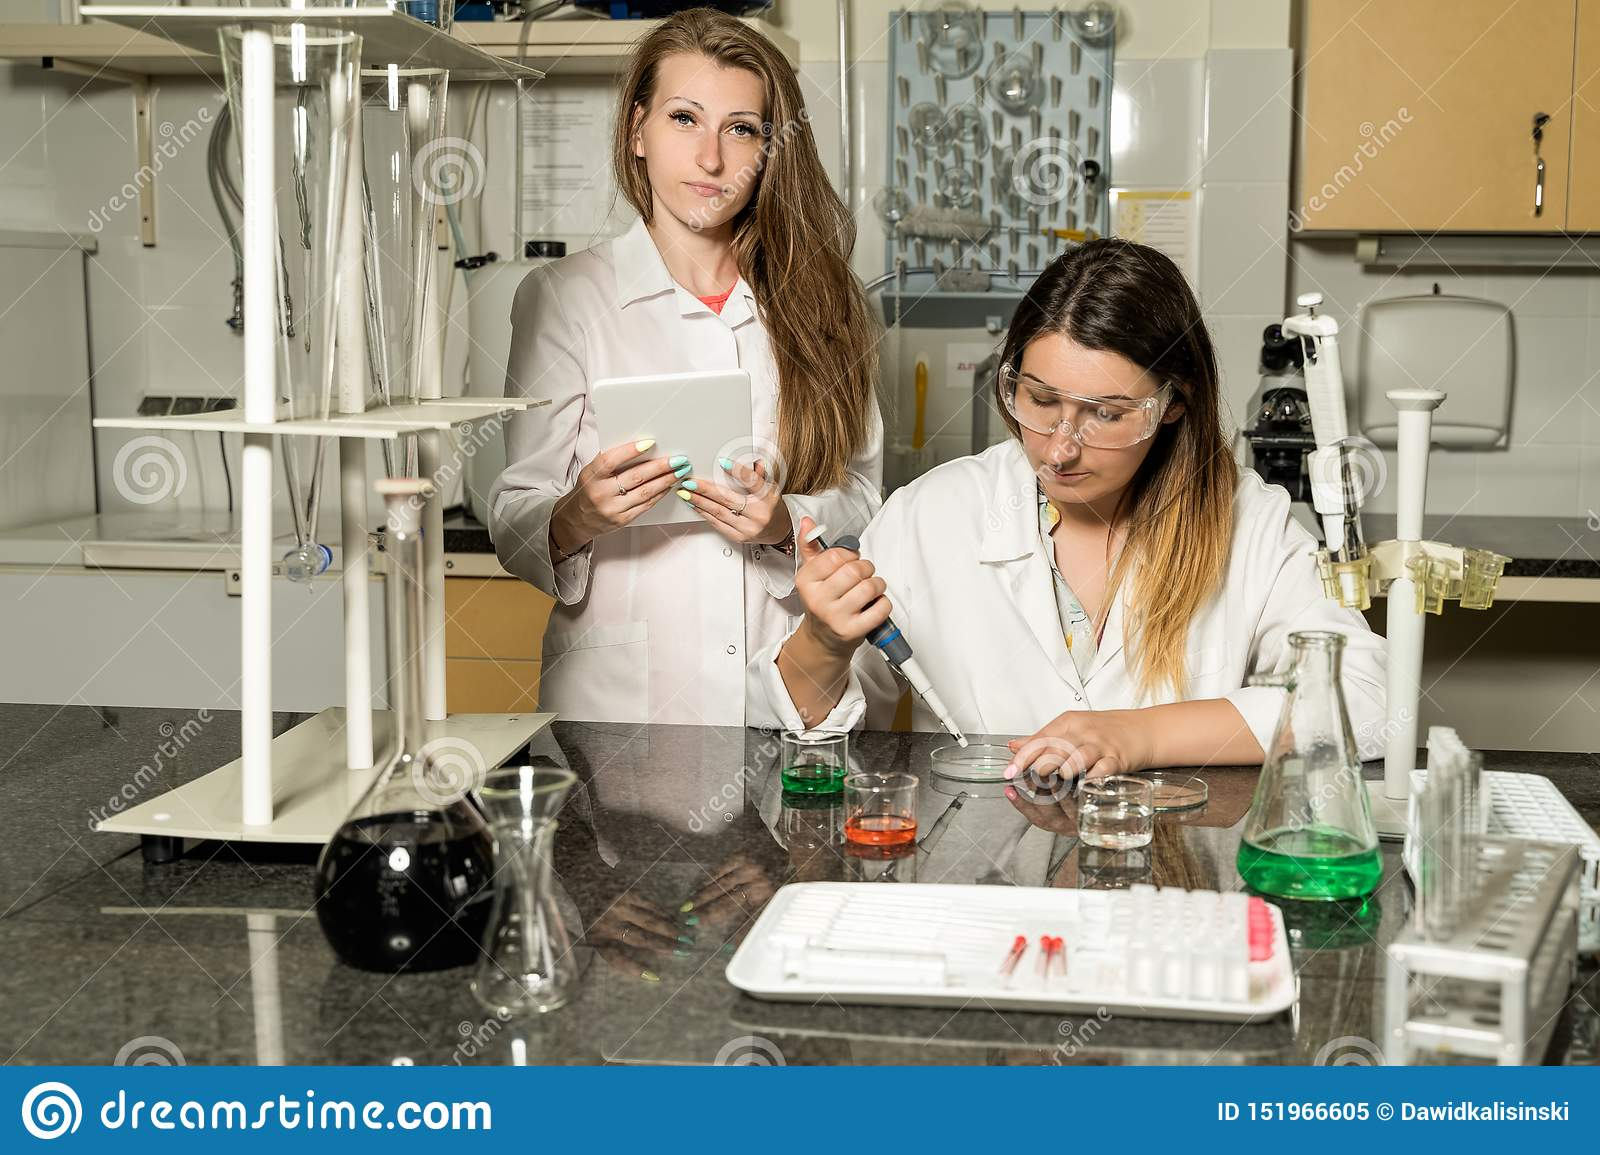 Team of two female laboratory technicians working in chemical or pharmaceutical laboratory